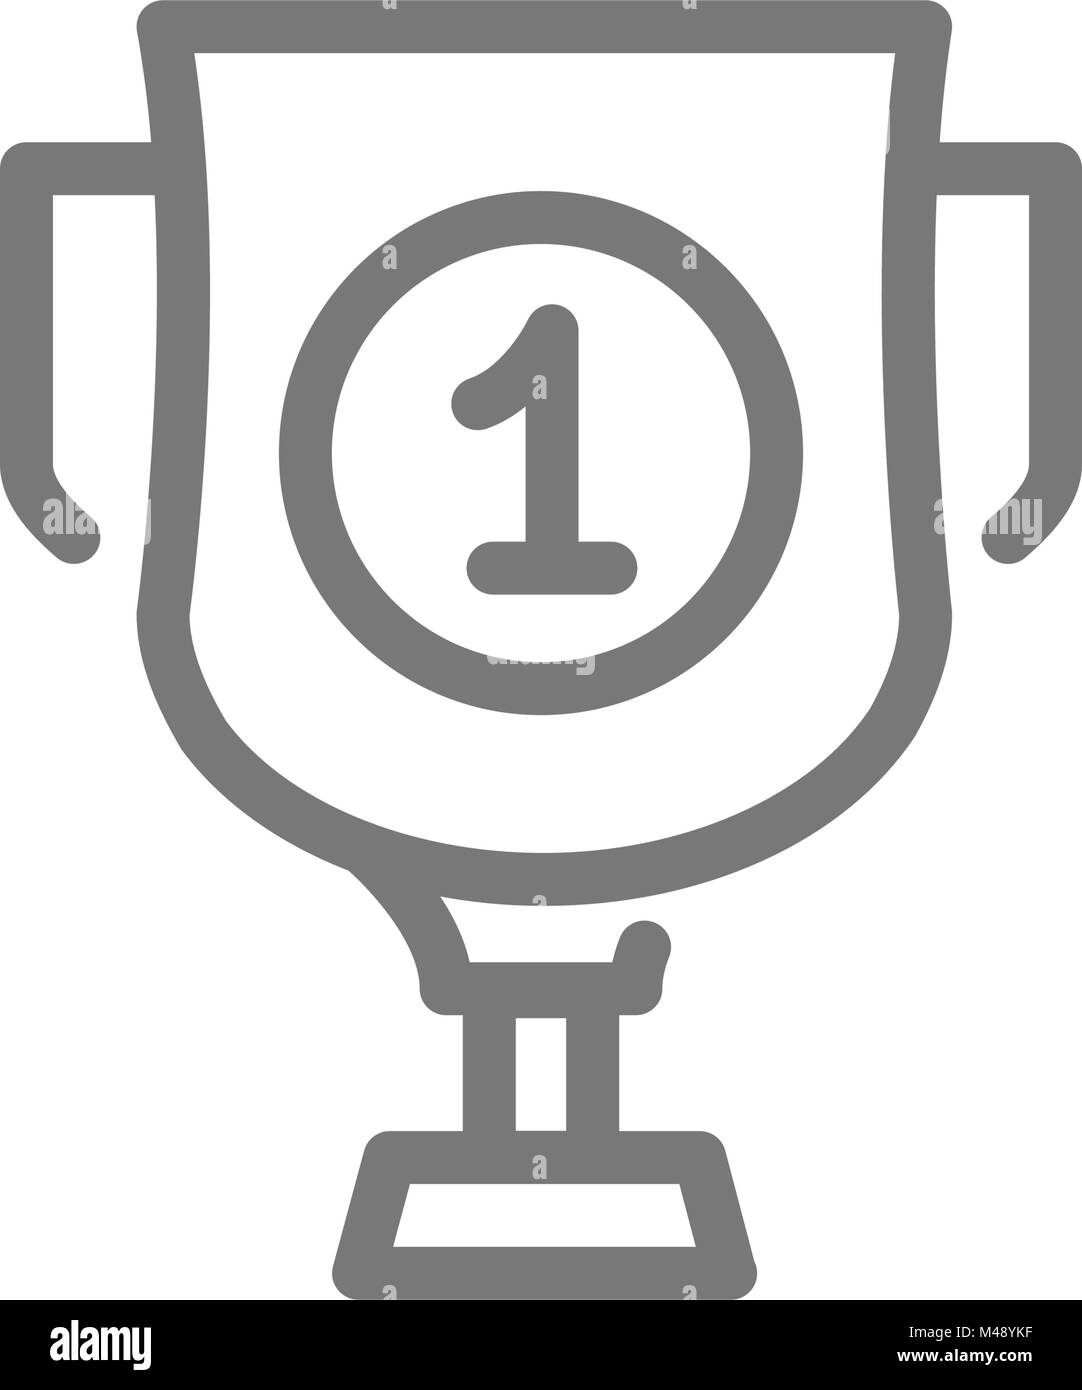 Simple Trophy And Award Cup Line Icon Symbol Sign Vector Illustration Design Isolated